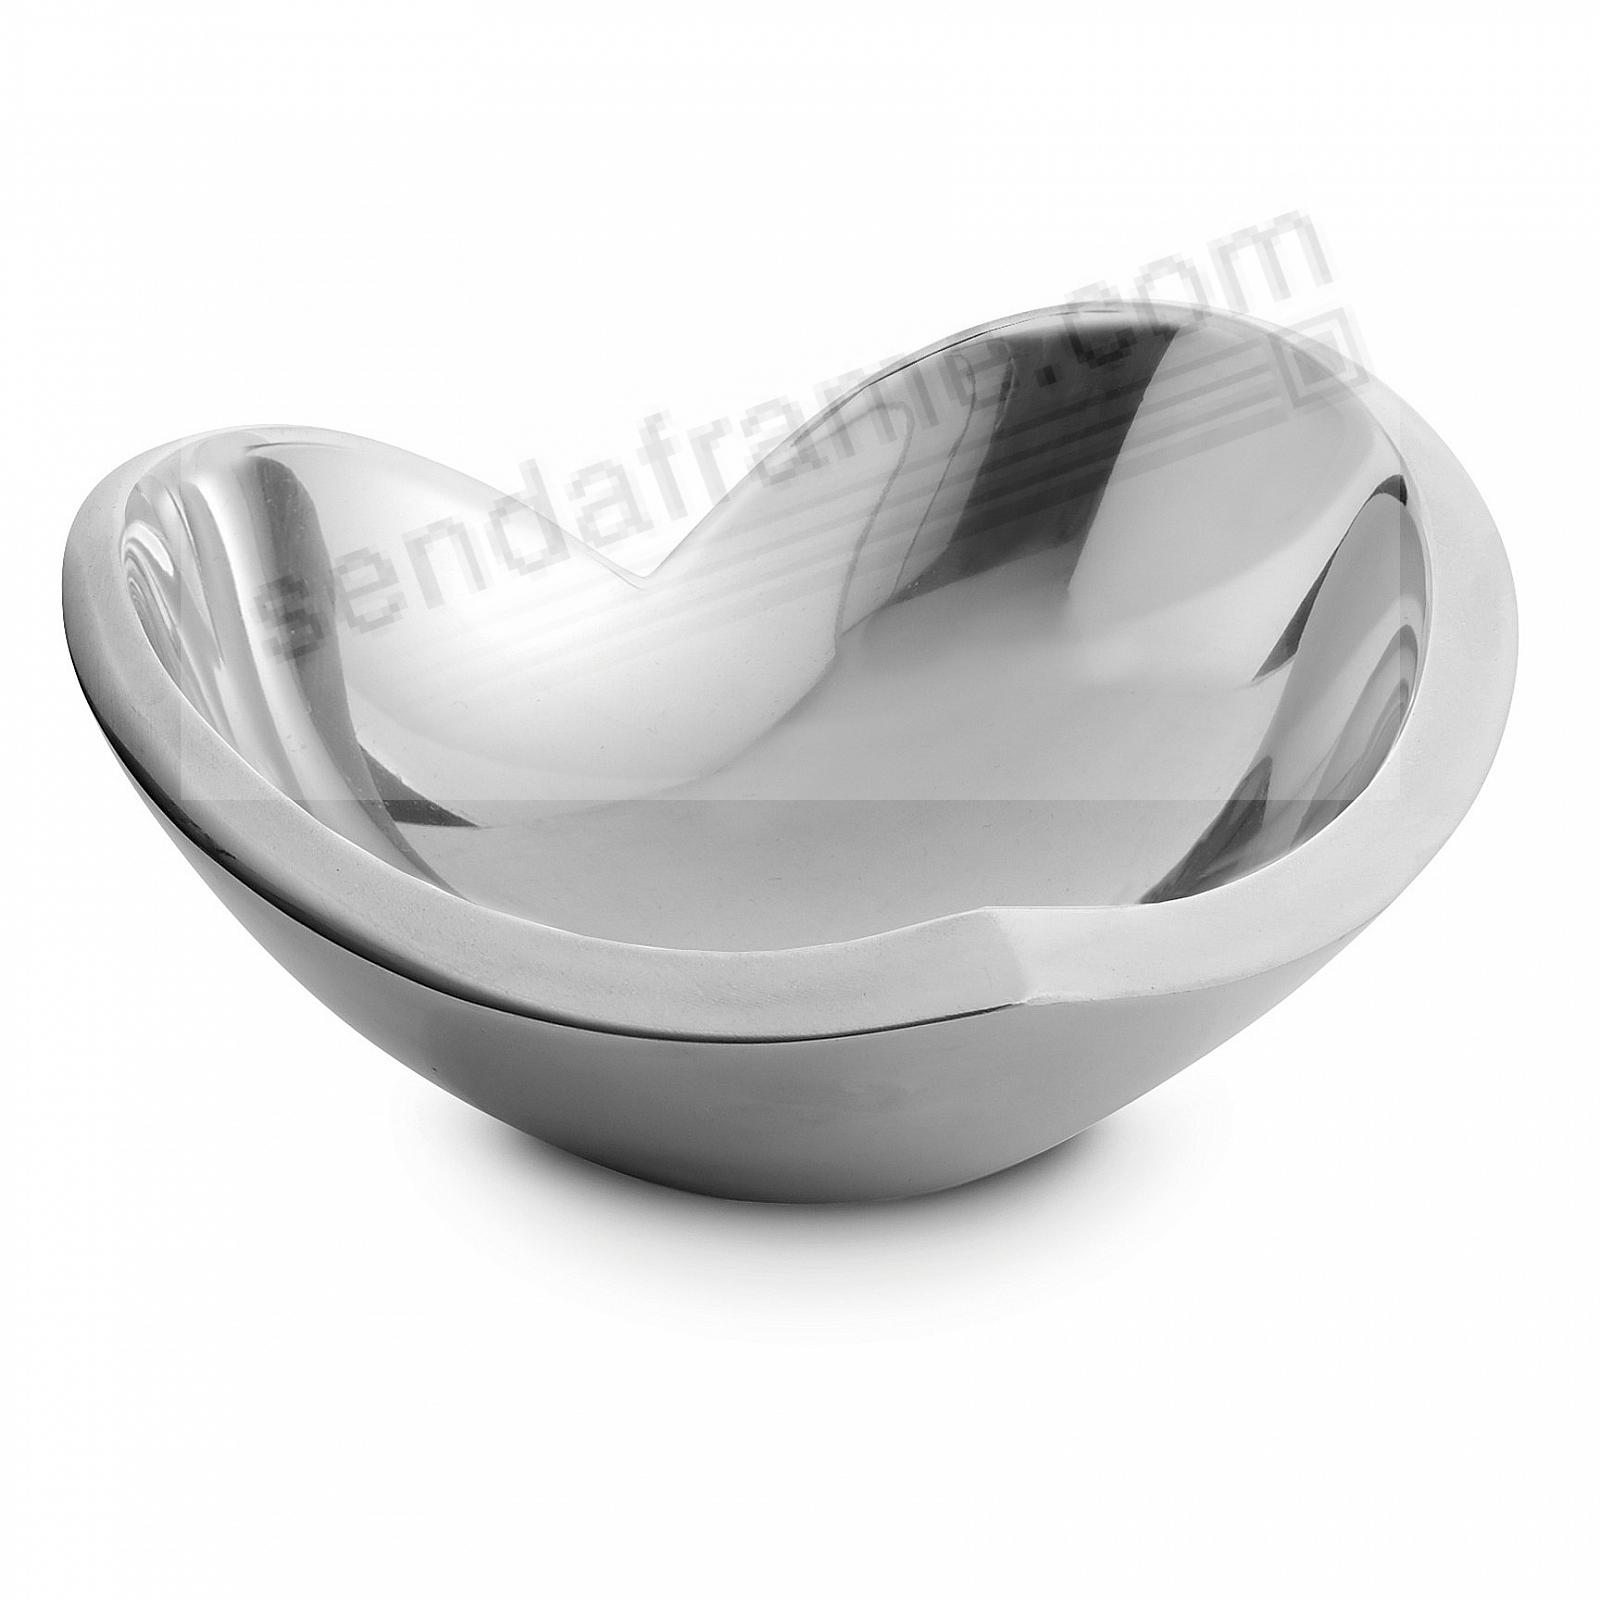 The Original LOVE BOWL 8½-in crafted by Nambe®